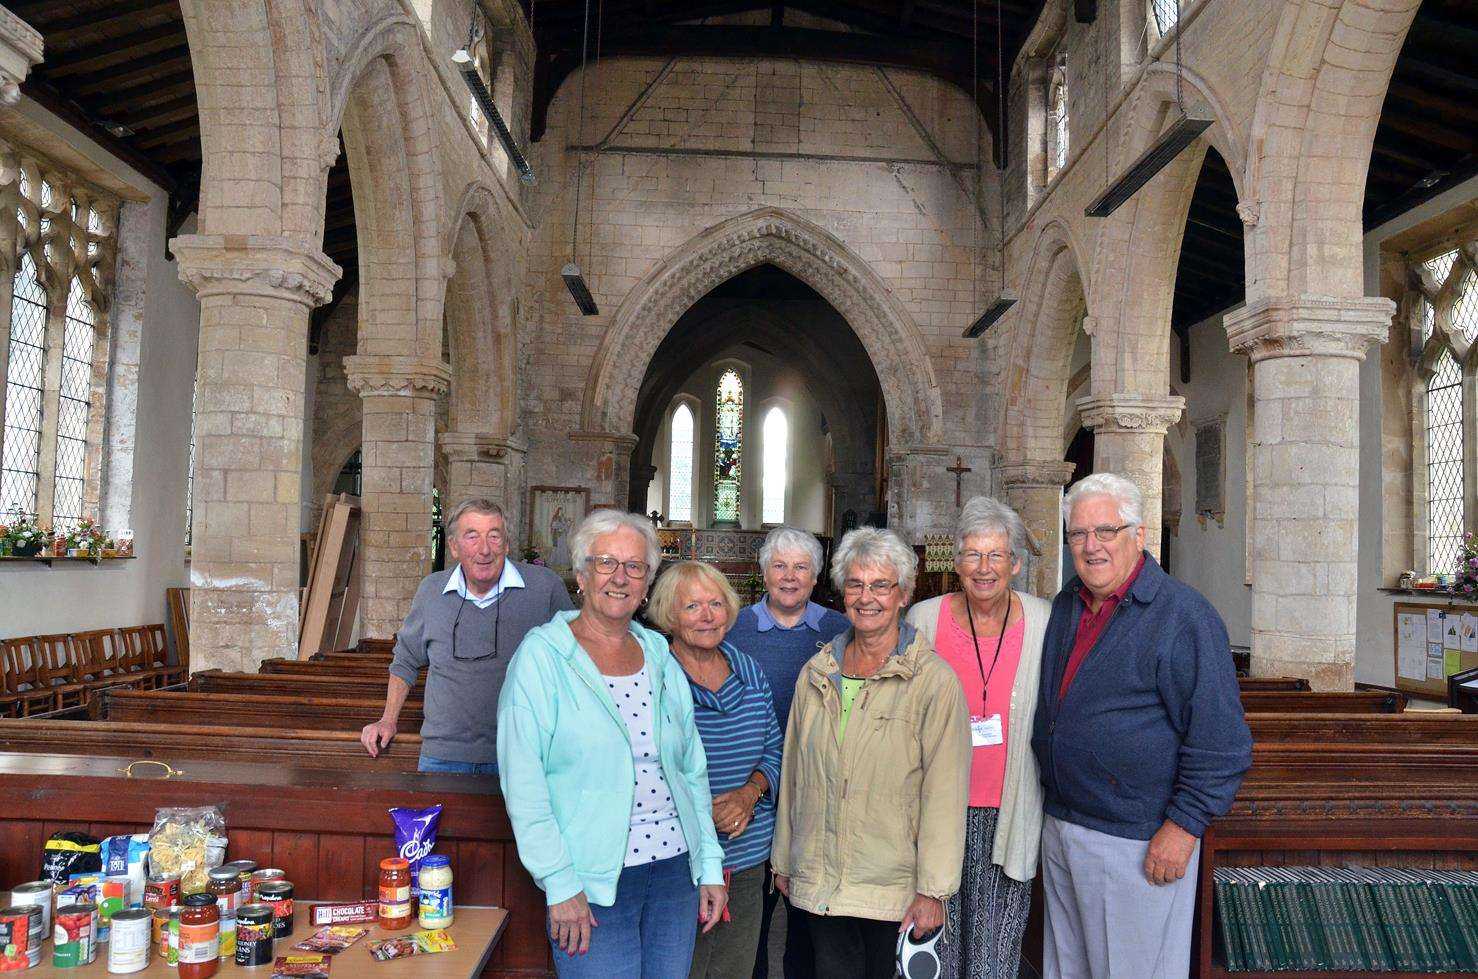 HELP CENTRE: Sutterton Foodbank volunteers at St Mary's Church are, from left,David Mossman, Mary Hubbert, foodbank coordinator Janet Mossman, Liz Beauchamp, Rosemary Goddard, June and Bob Greenslade.Photo (TIM WILSON):SG-210918-063TW